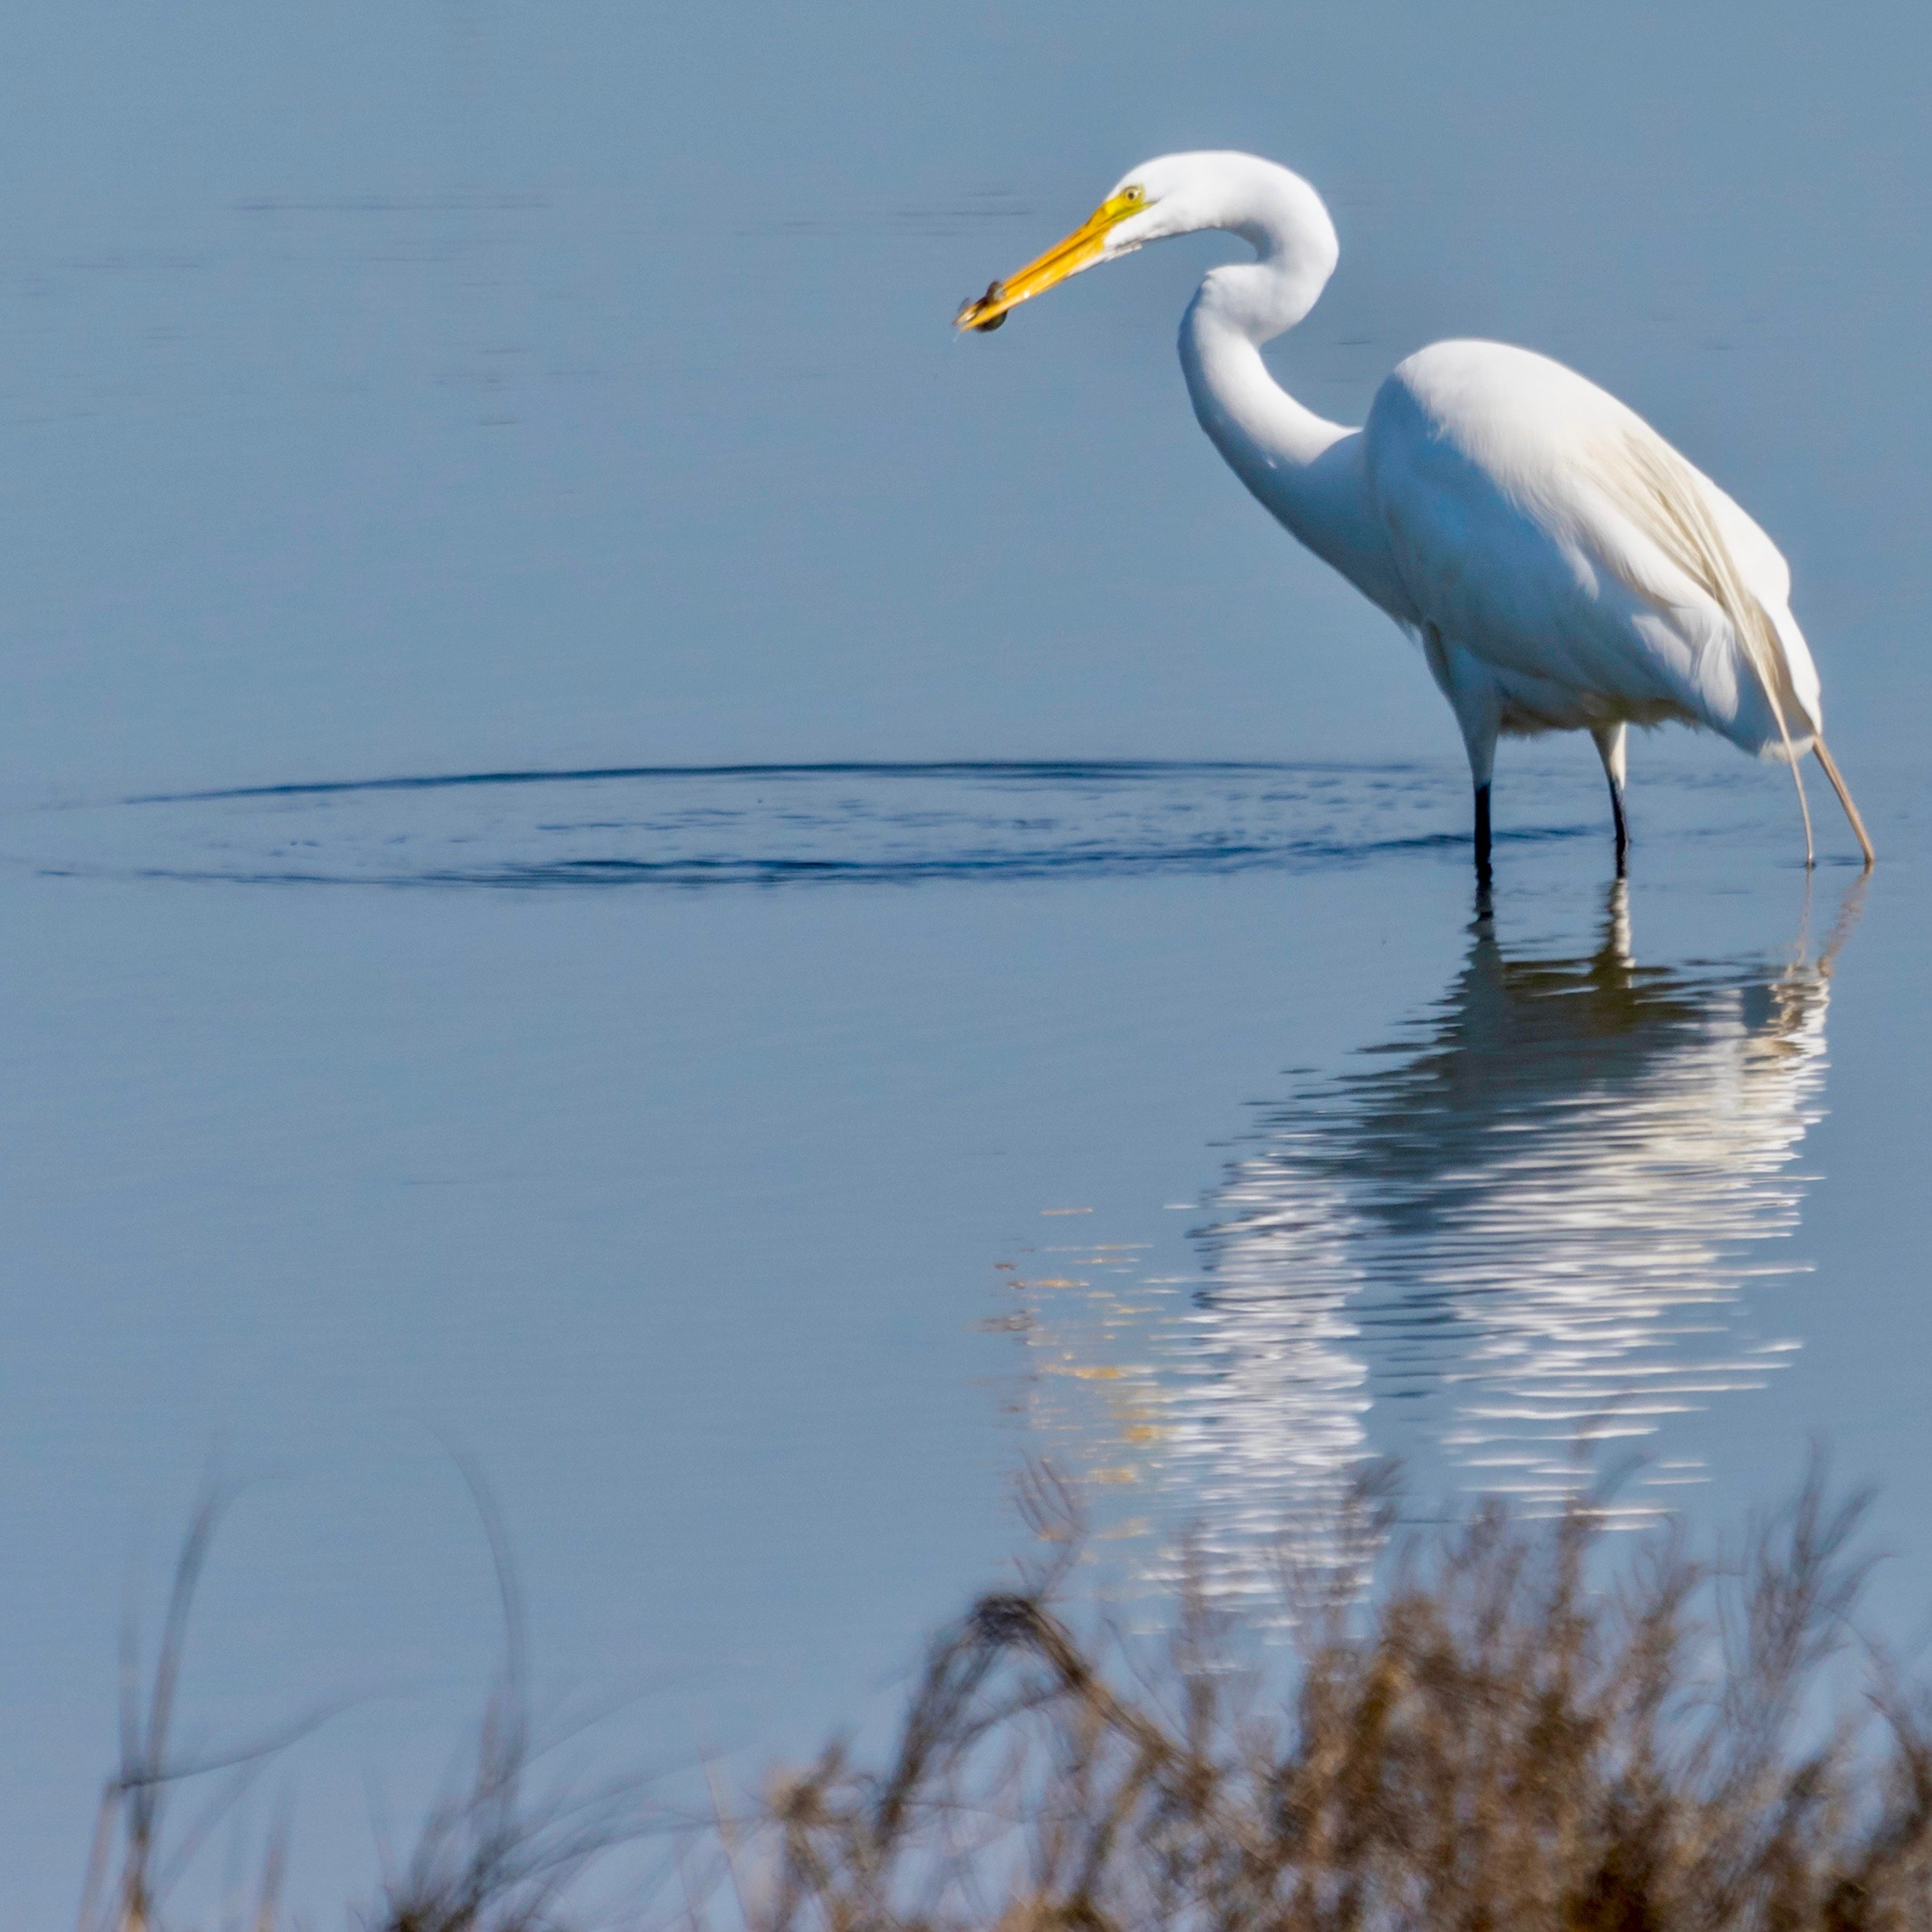 Great Egret catching a fish.